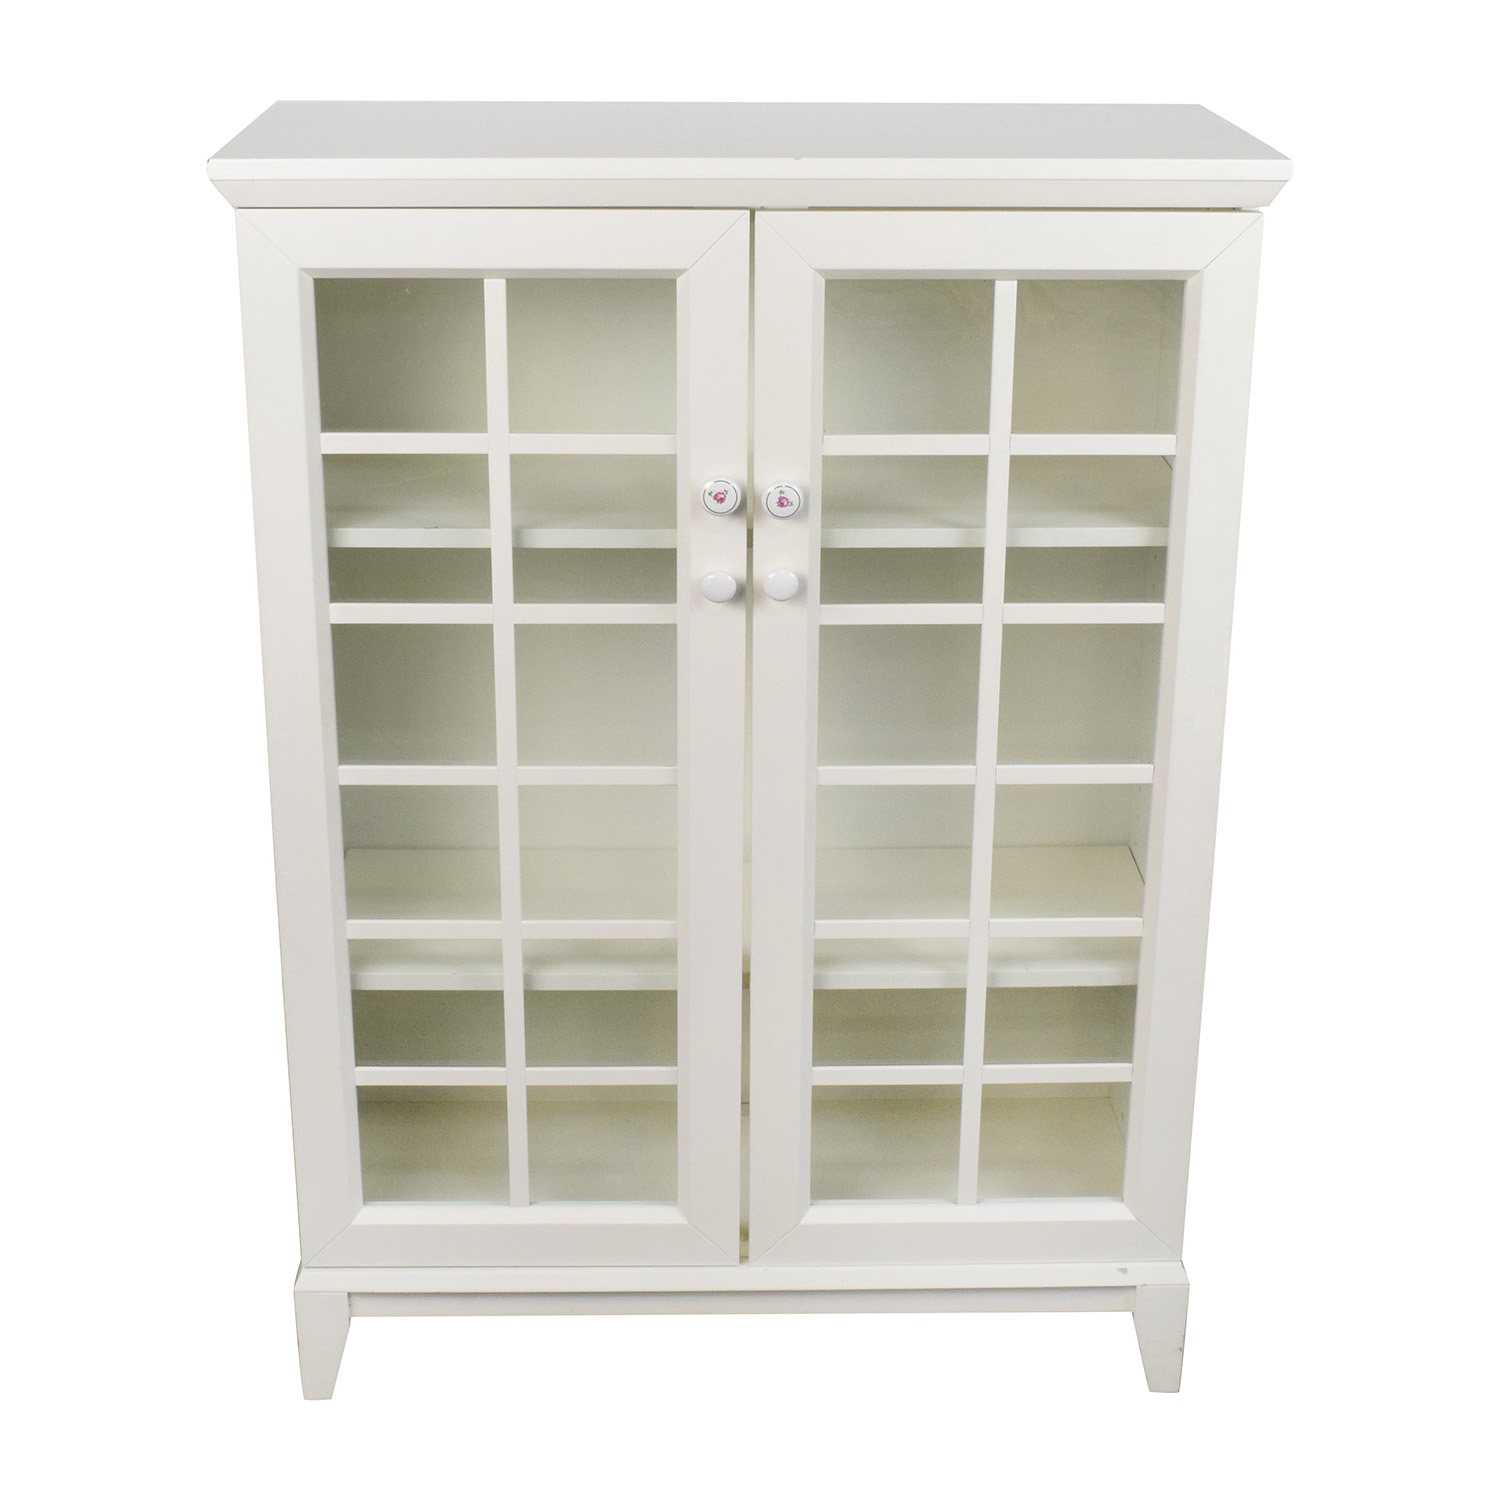 Crate and Barrel White China Cabinet sale